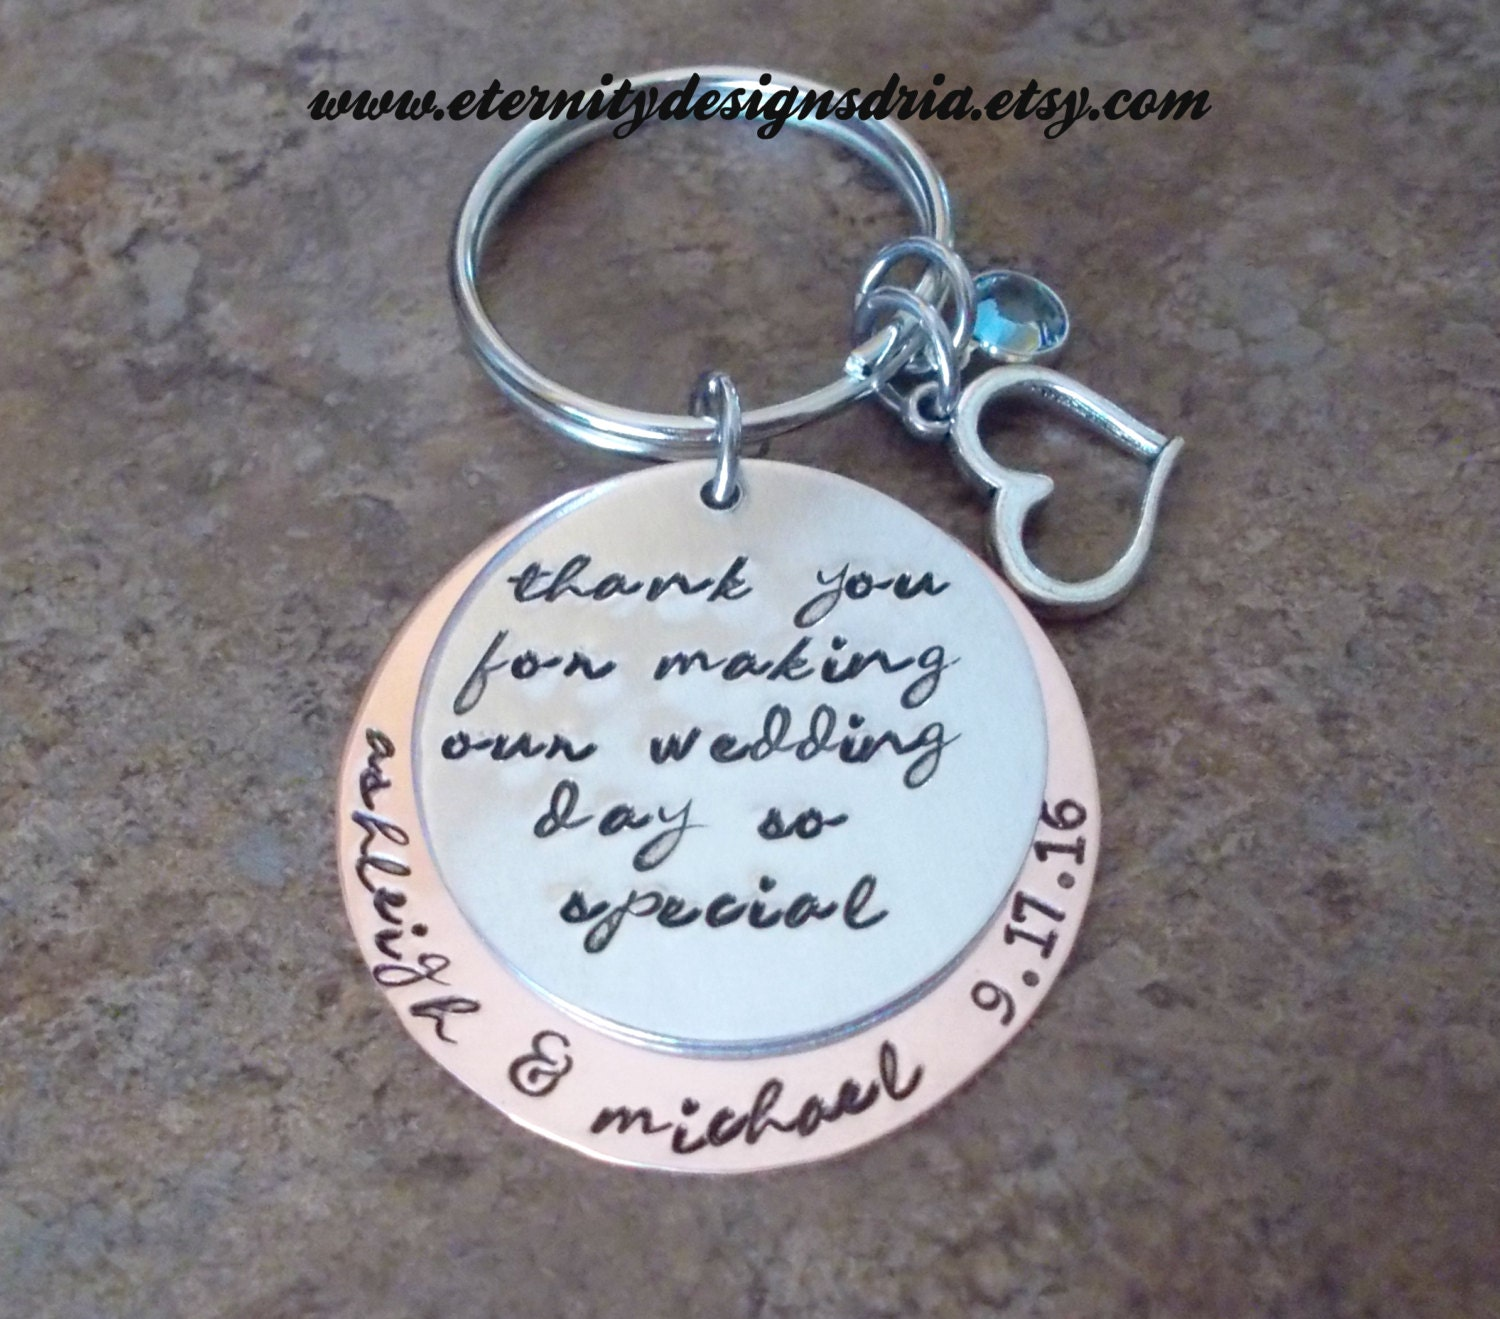 Keychain For Wedding Gift : Personalized Wedding Gift Keychain Thank You For Making Our